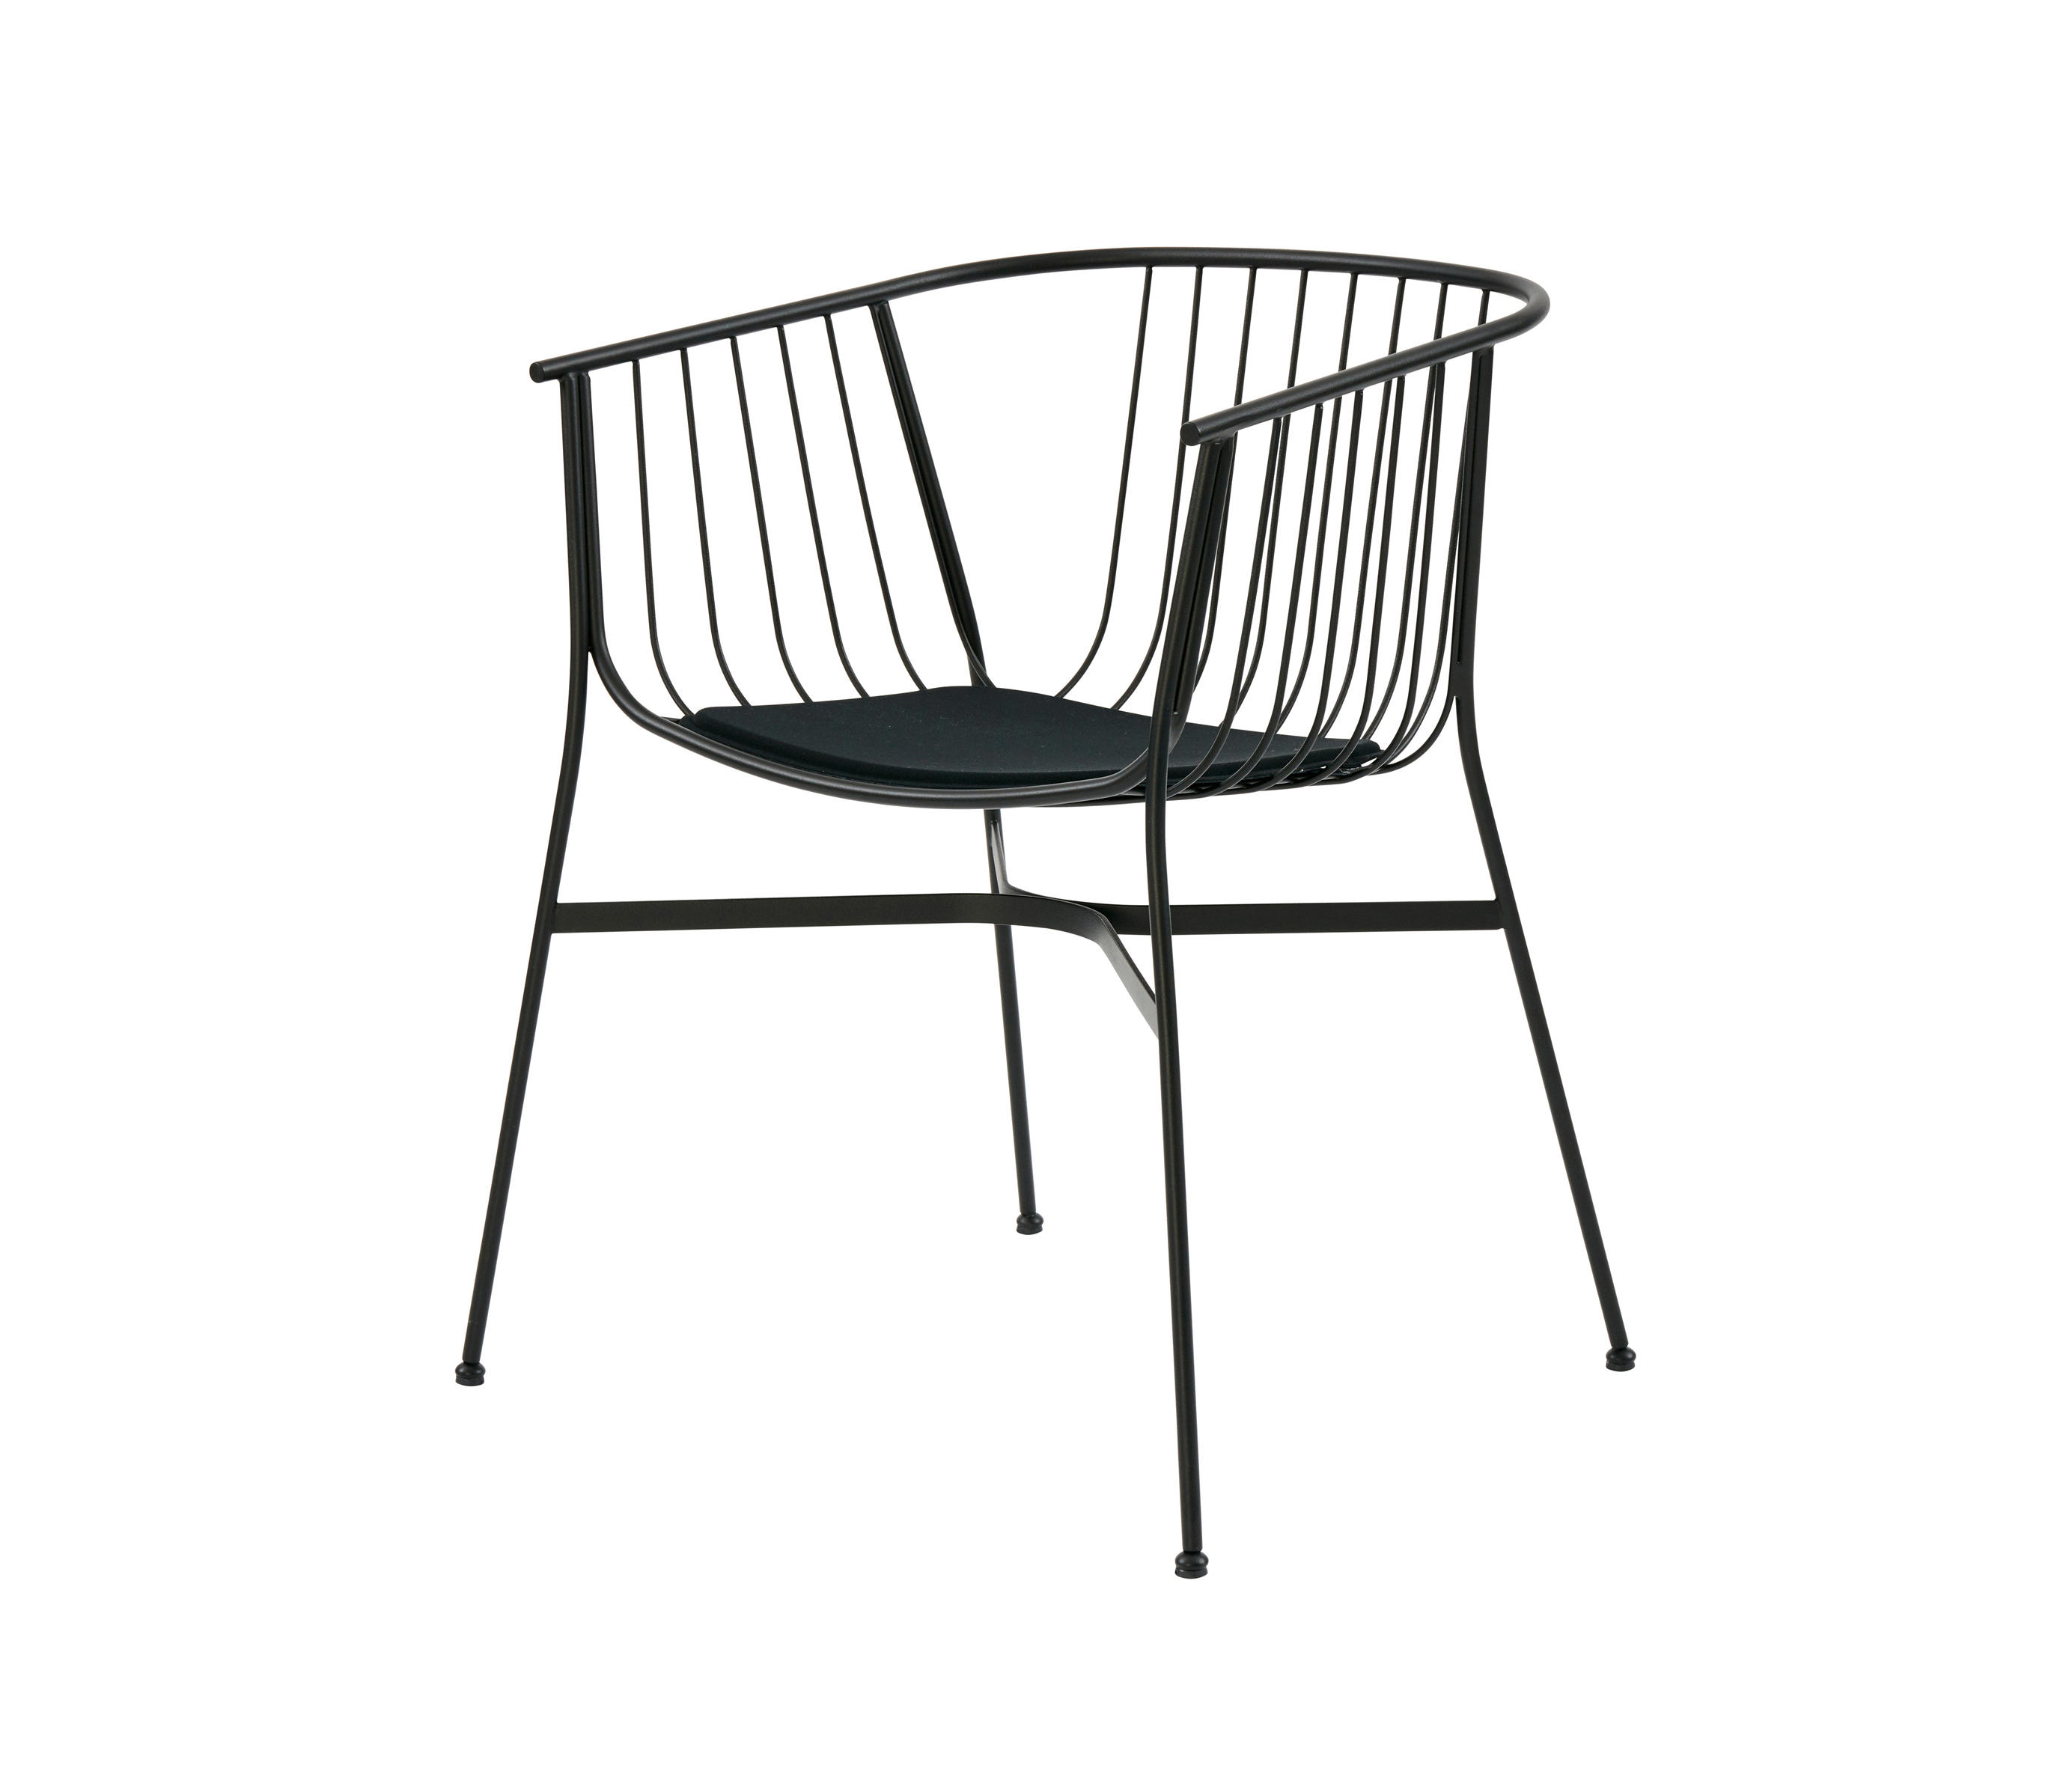 JEANETTE CHAIR - Chairs from SP6  Architonic